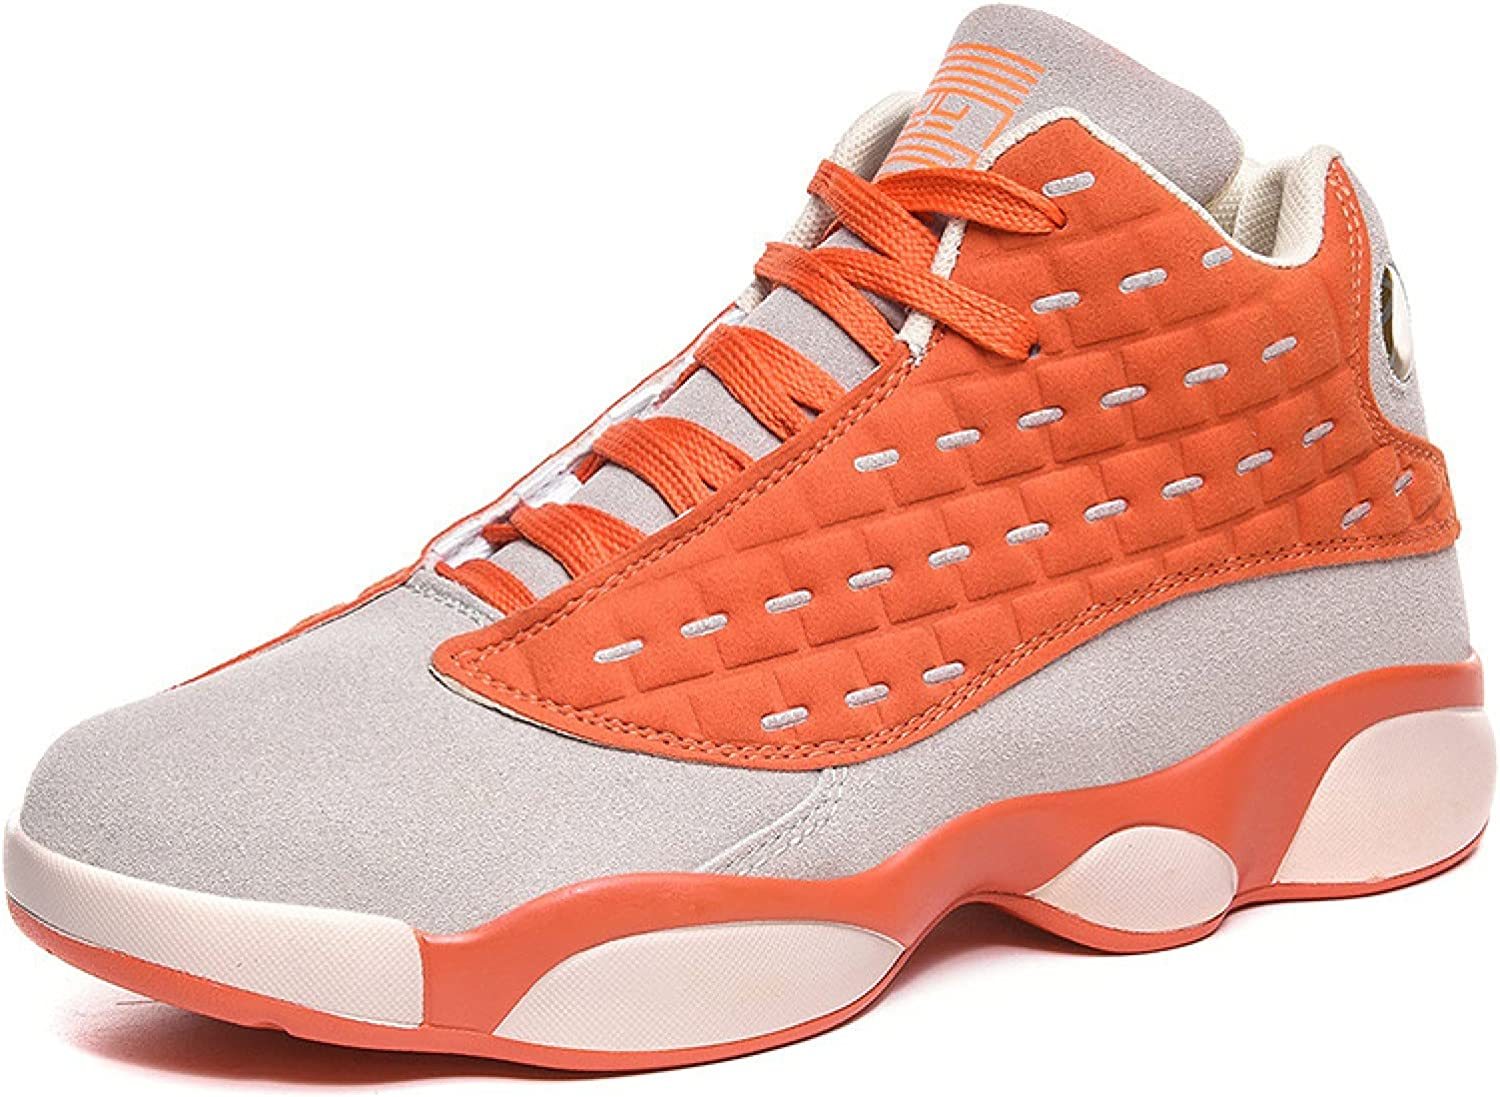 Men's High-Top Basketball List price Shoes Limited price B Combat Non-Slip Wear-Resistant